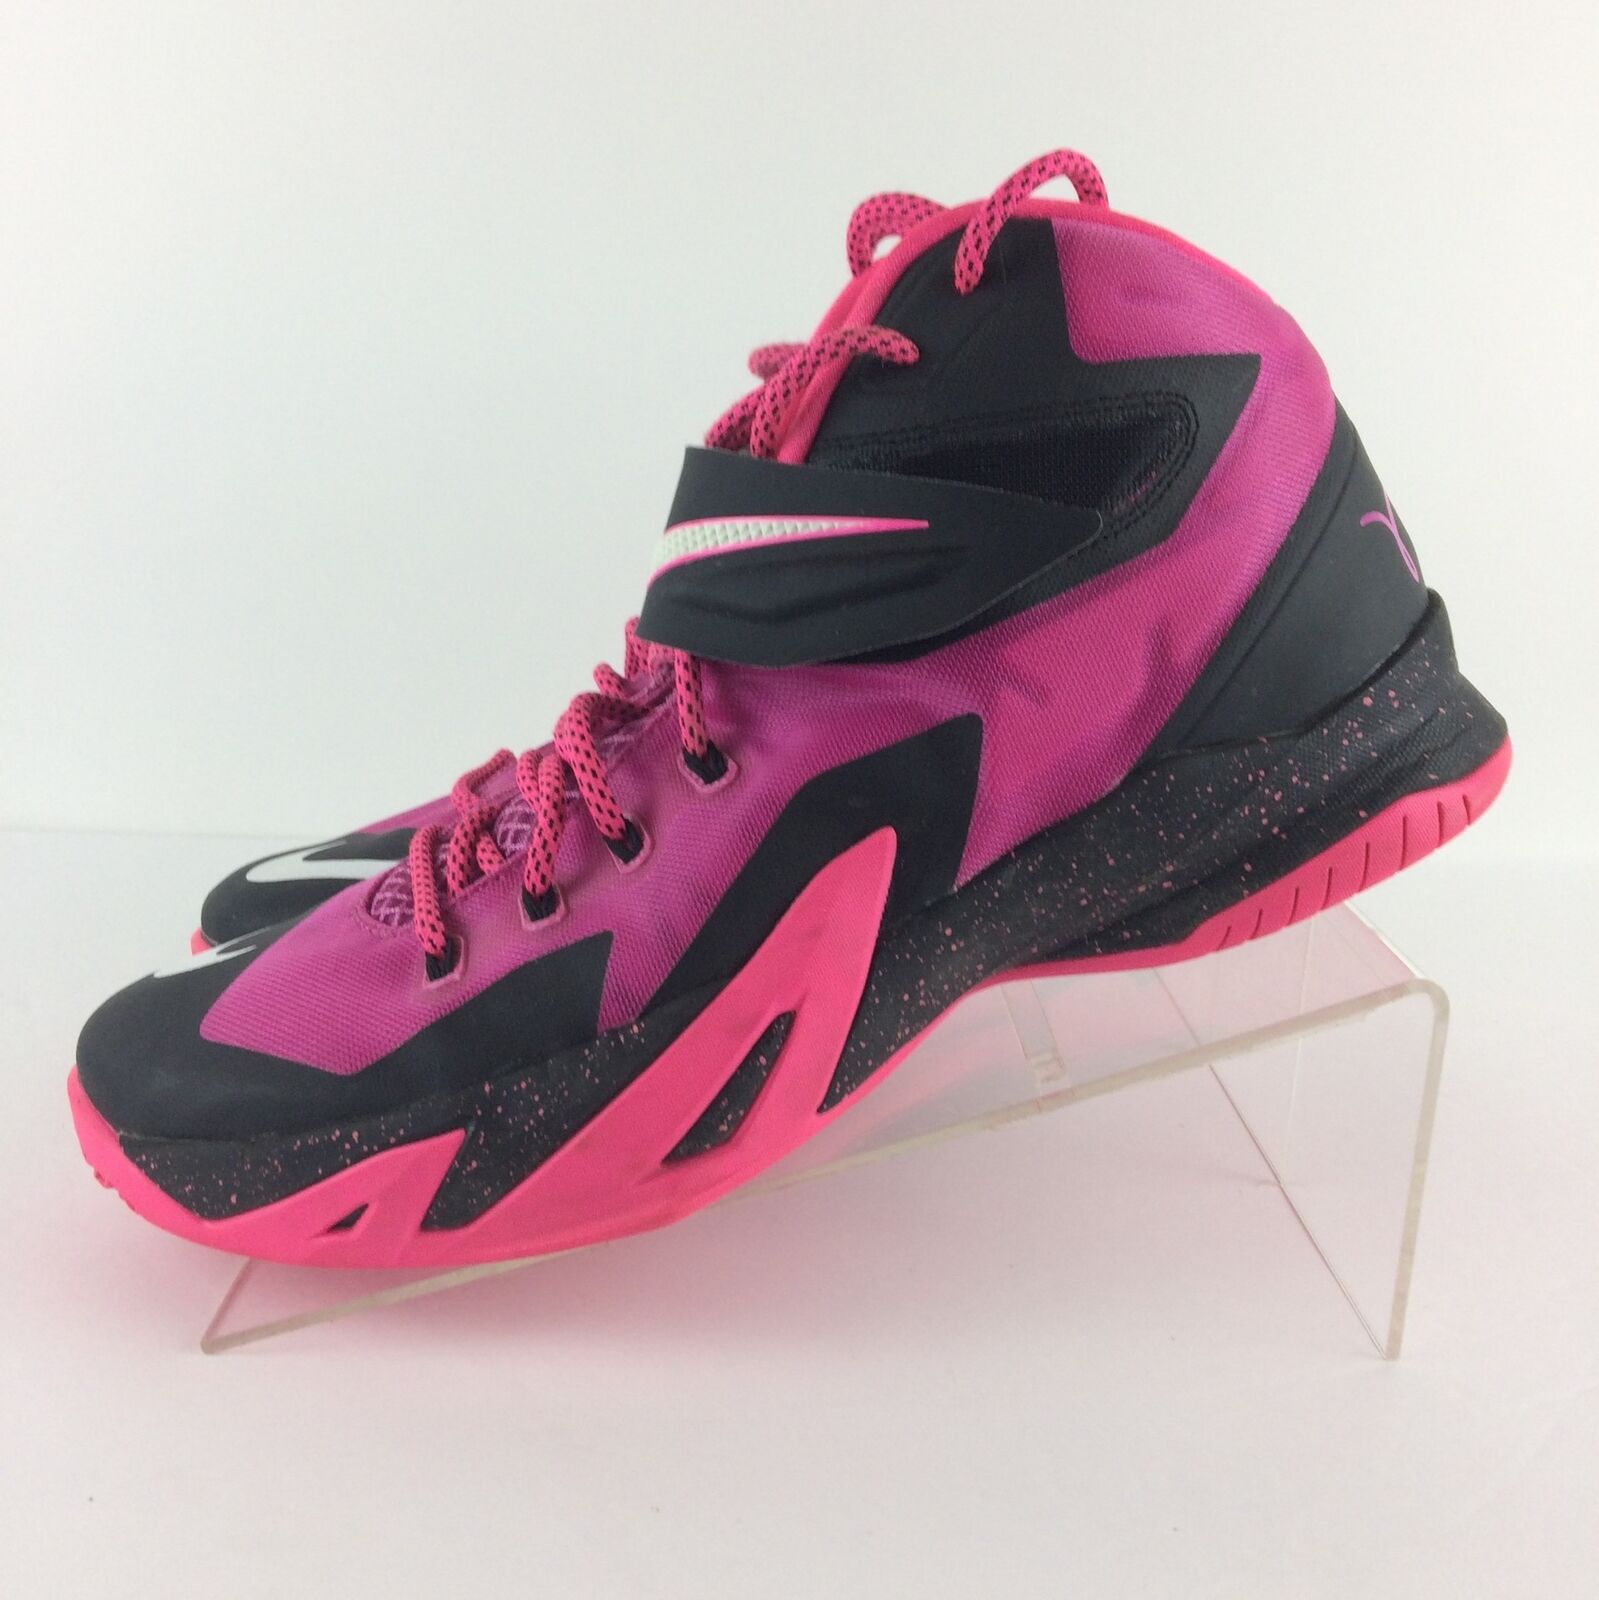 Nike Mens Lebron Soldier Soldier Soldier VIII 8 shoes Breast Cancer, Pink 653641-610, Size 10.5 acf2a2